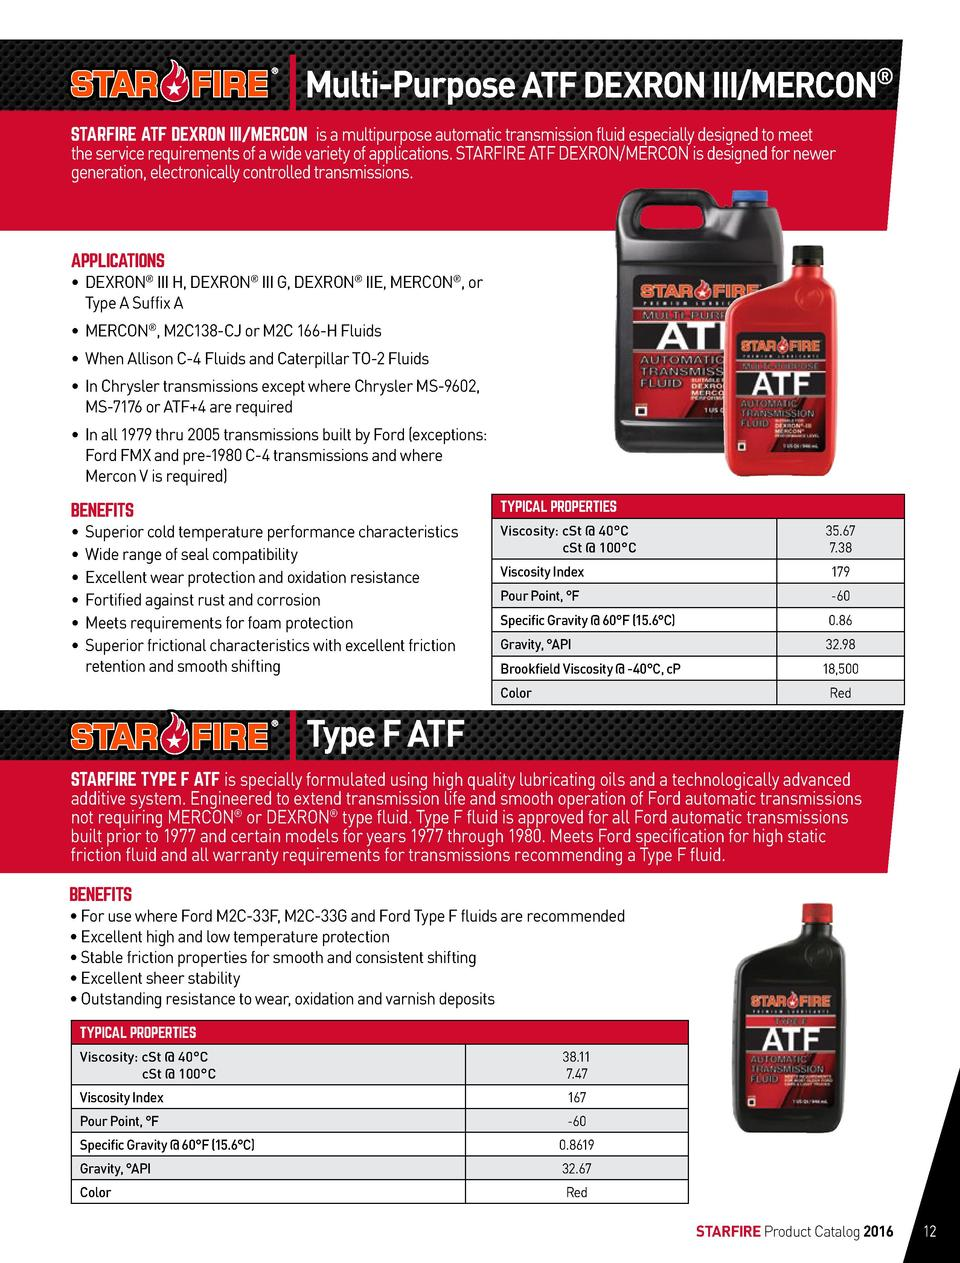 Multi-Purpose ATF DEXRON III MERCON   STARFIRE ATF DEXRON III MERCON is a multipurpose automatic transmission fluid especi...